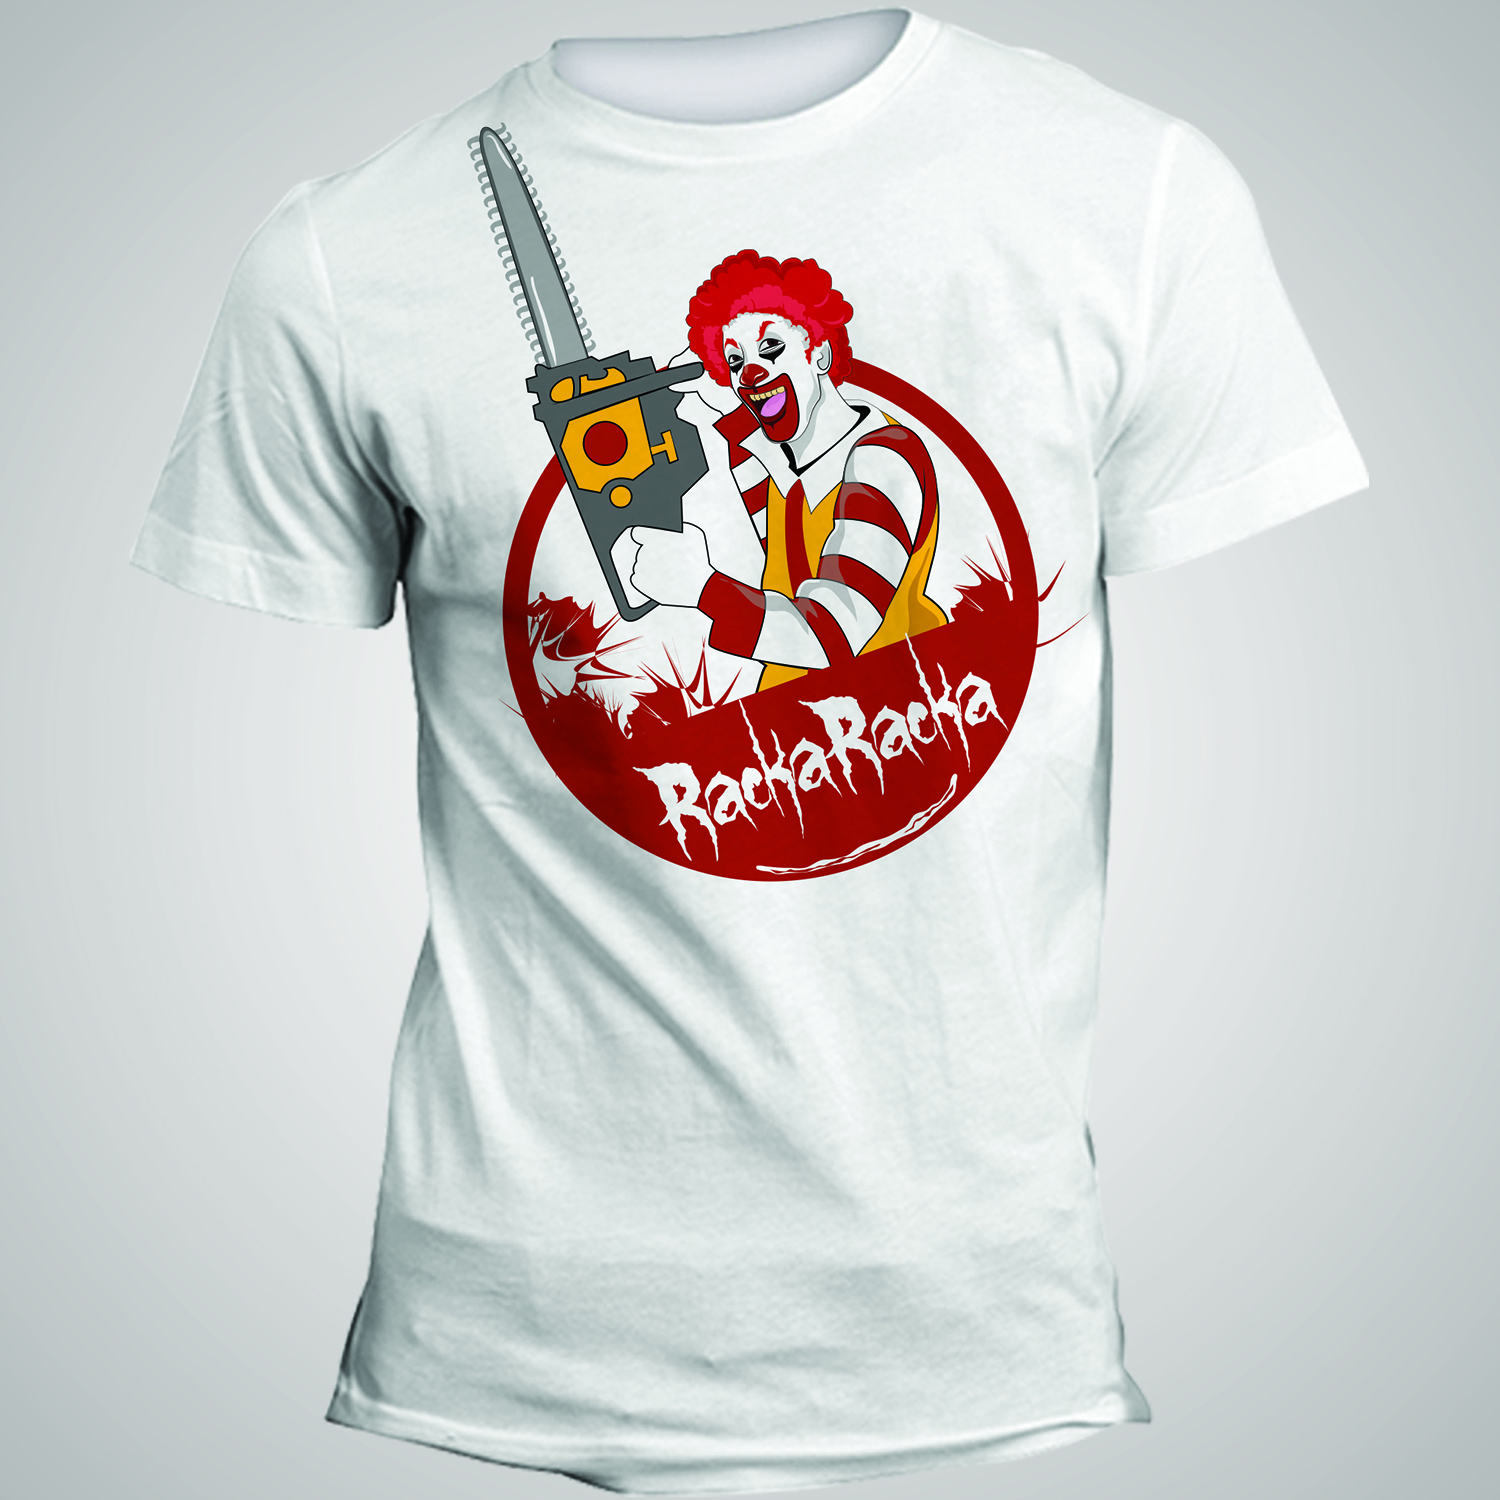 Design t shirt youtube - T Shirt Design By Sd Web For Rackaracka Large Youtube Channel Needs T